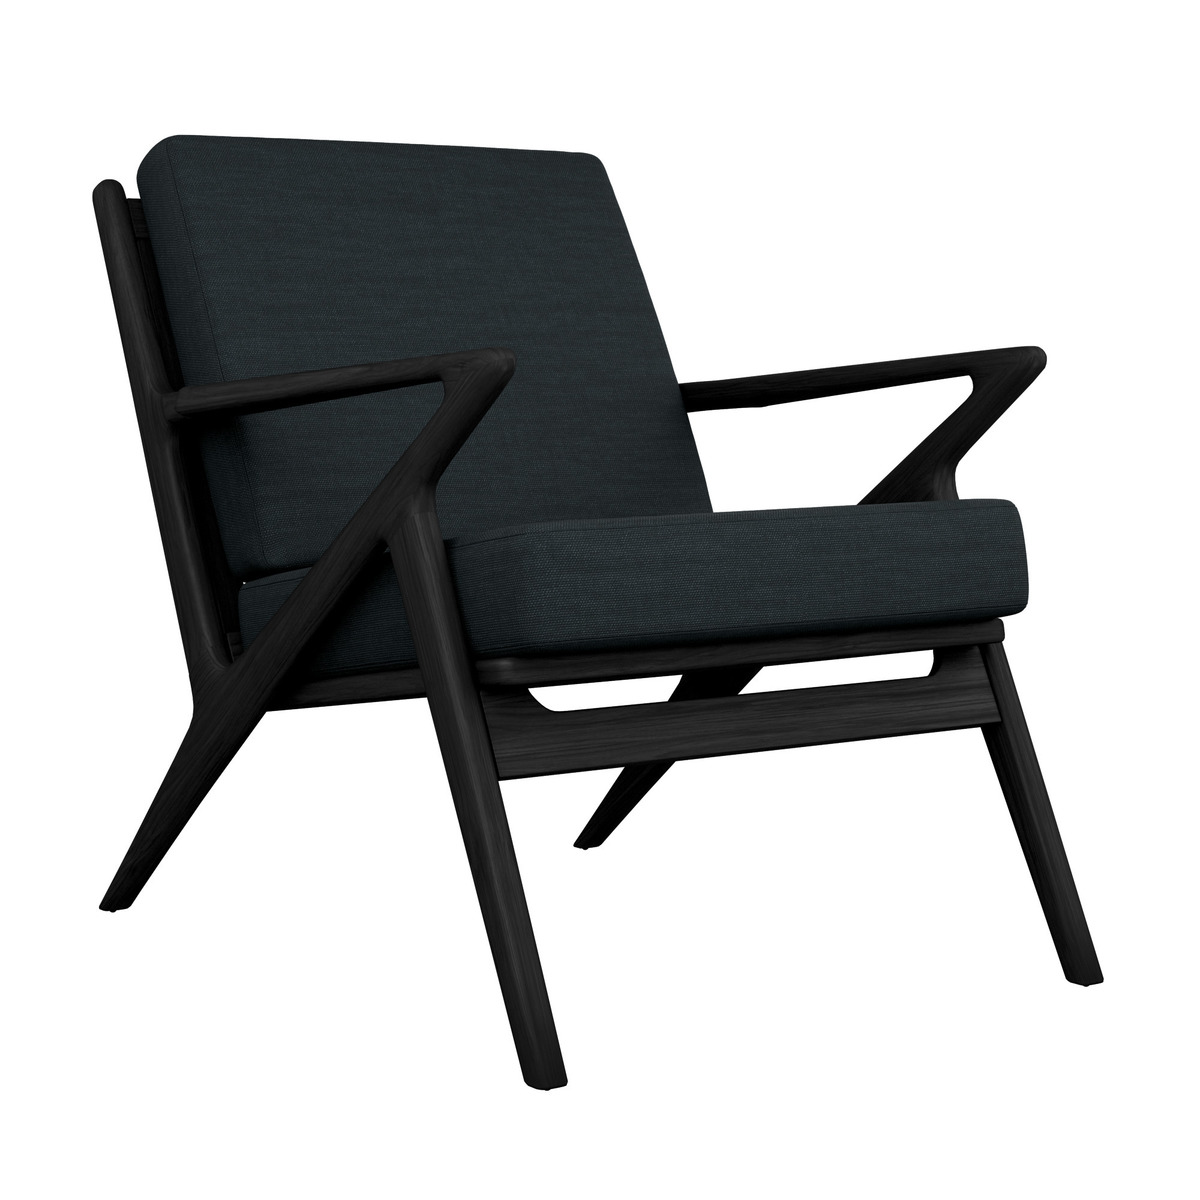 Ace Lounge Chair 568441